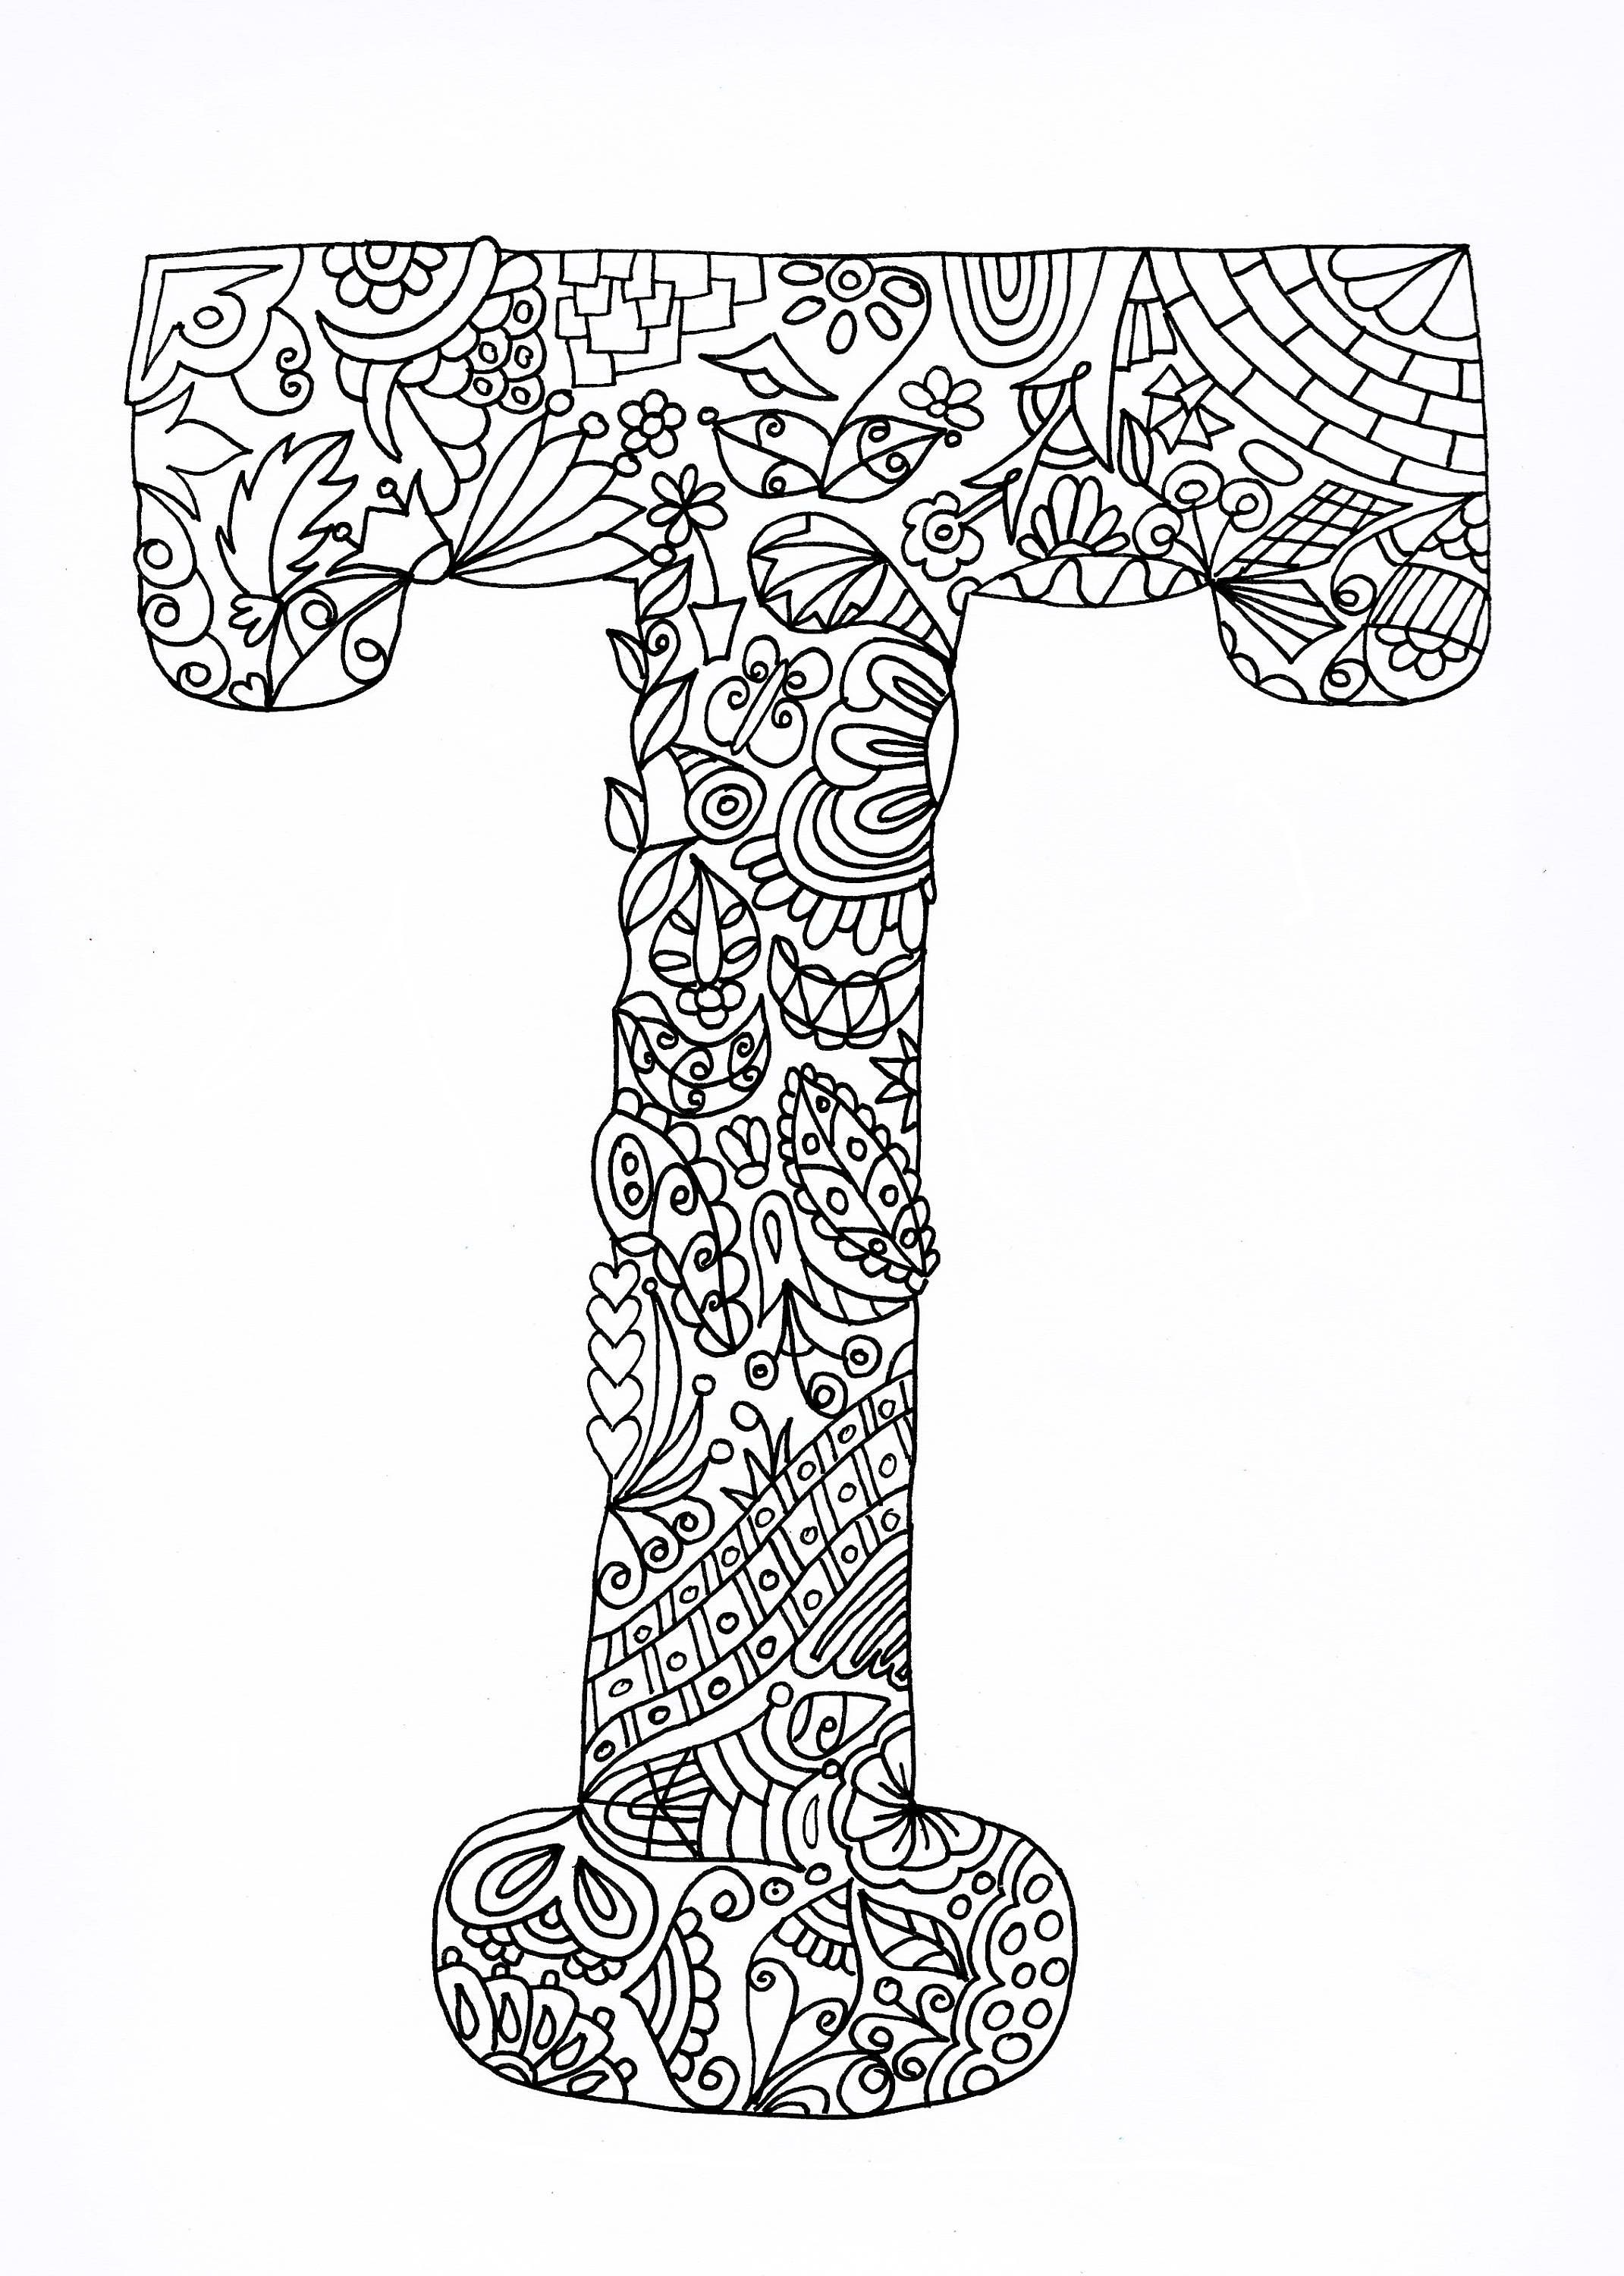 Coloring Letter T, Adult Autumn Colouring Page Hand Drawn